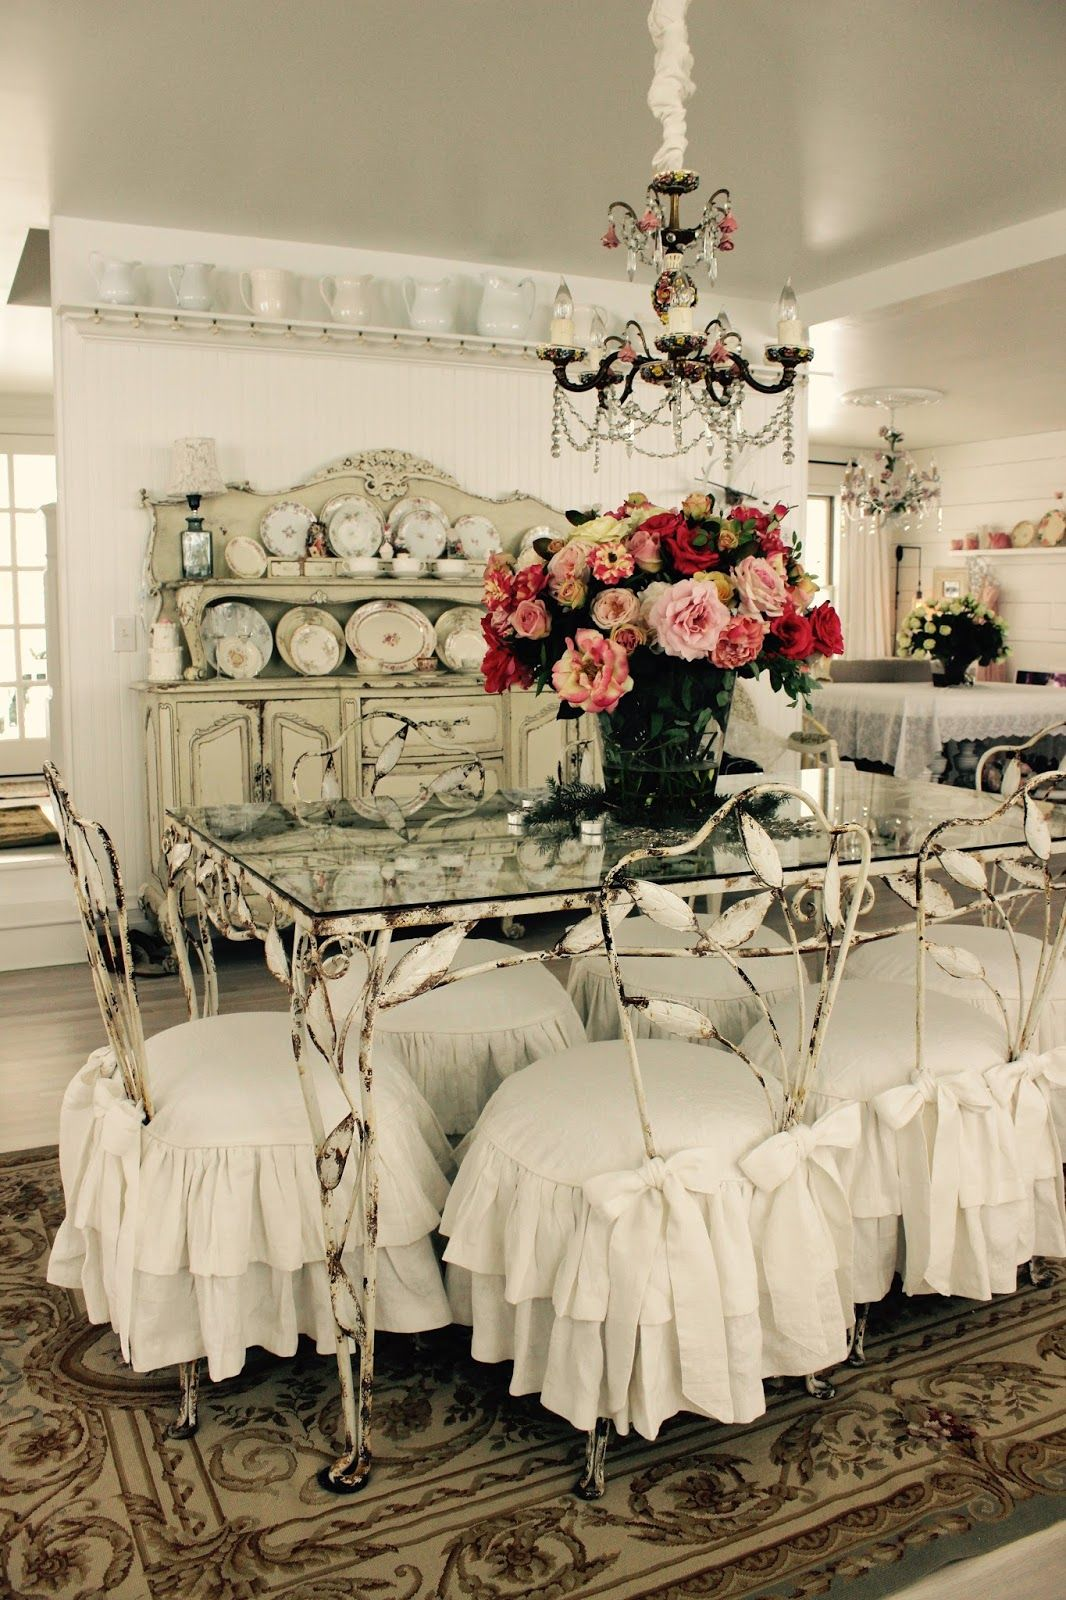 Great Custom Slipcovers By Shelley: Shabby Chic Ruffled Slipcovers